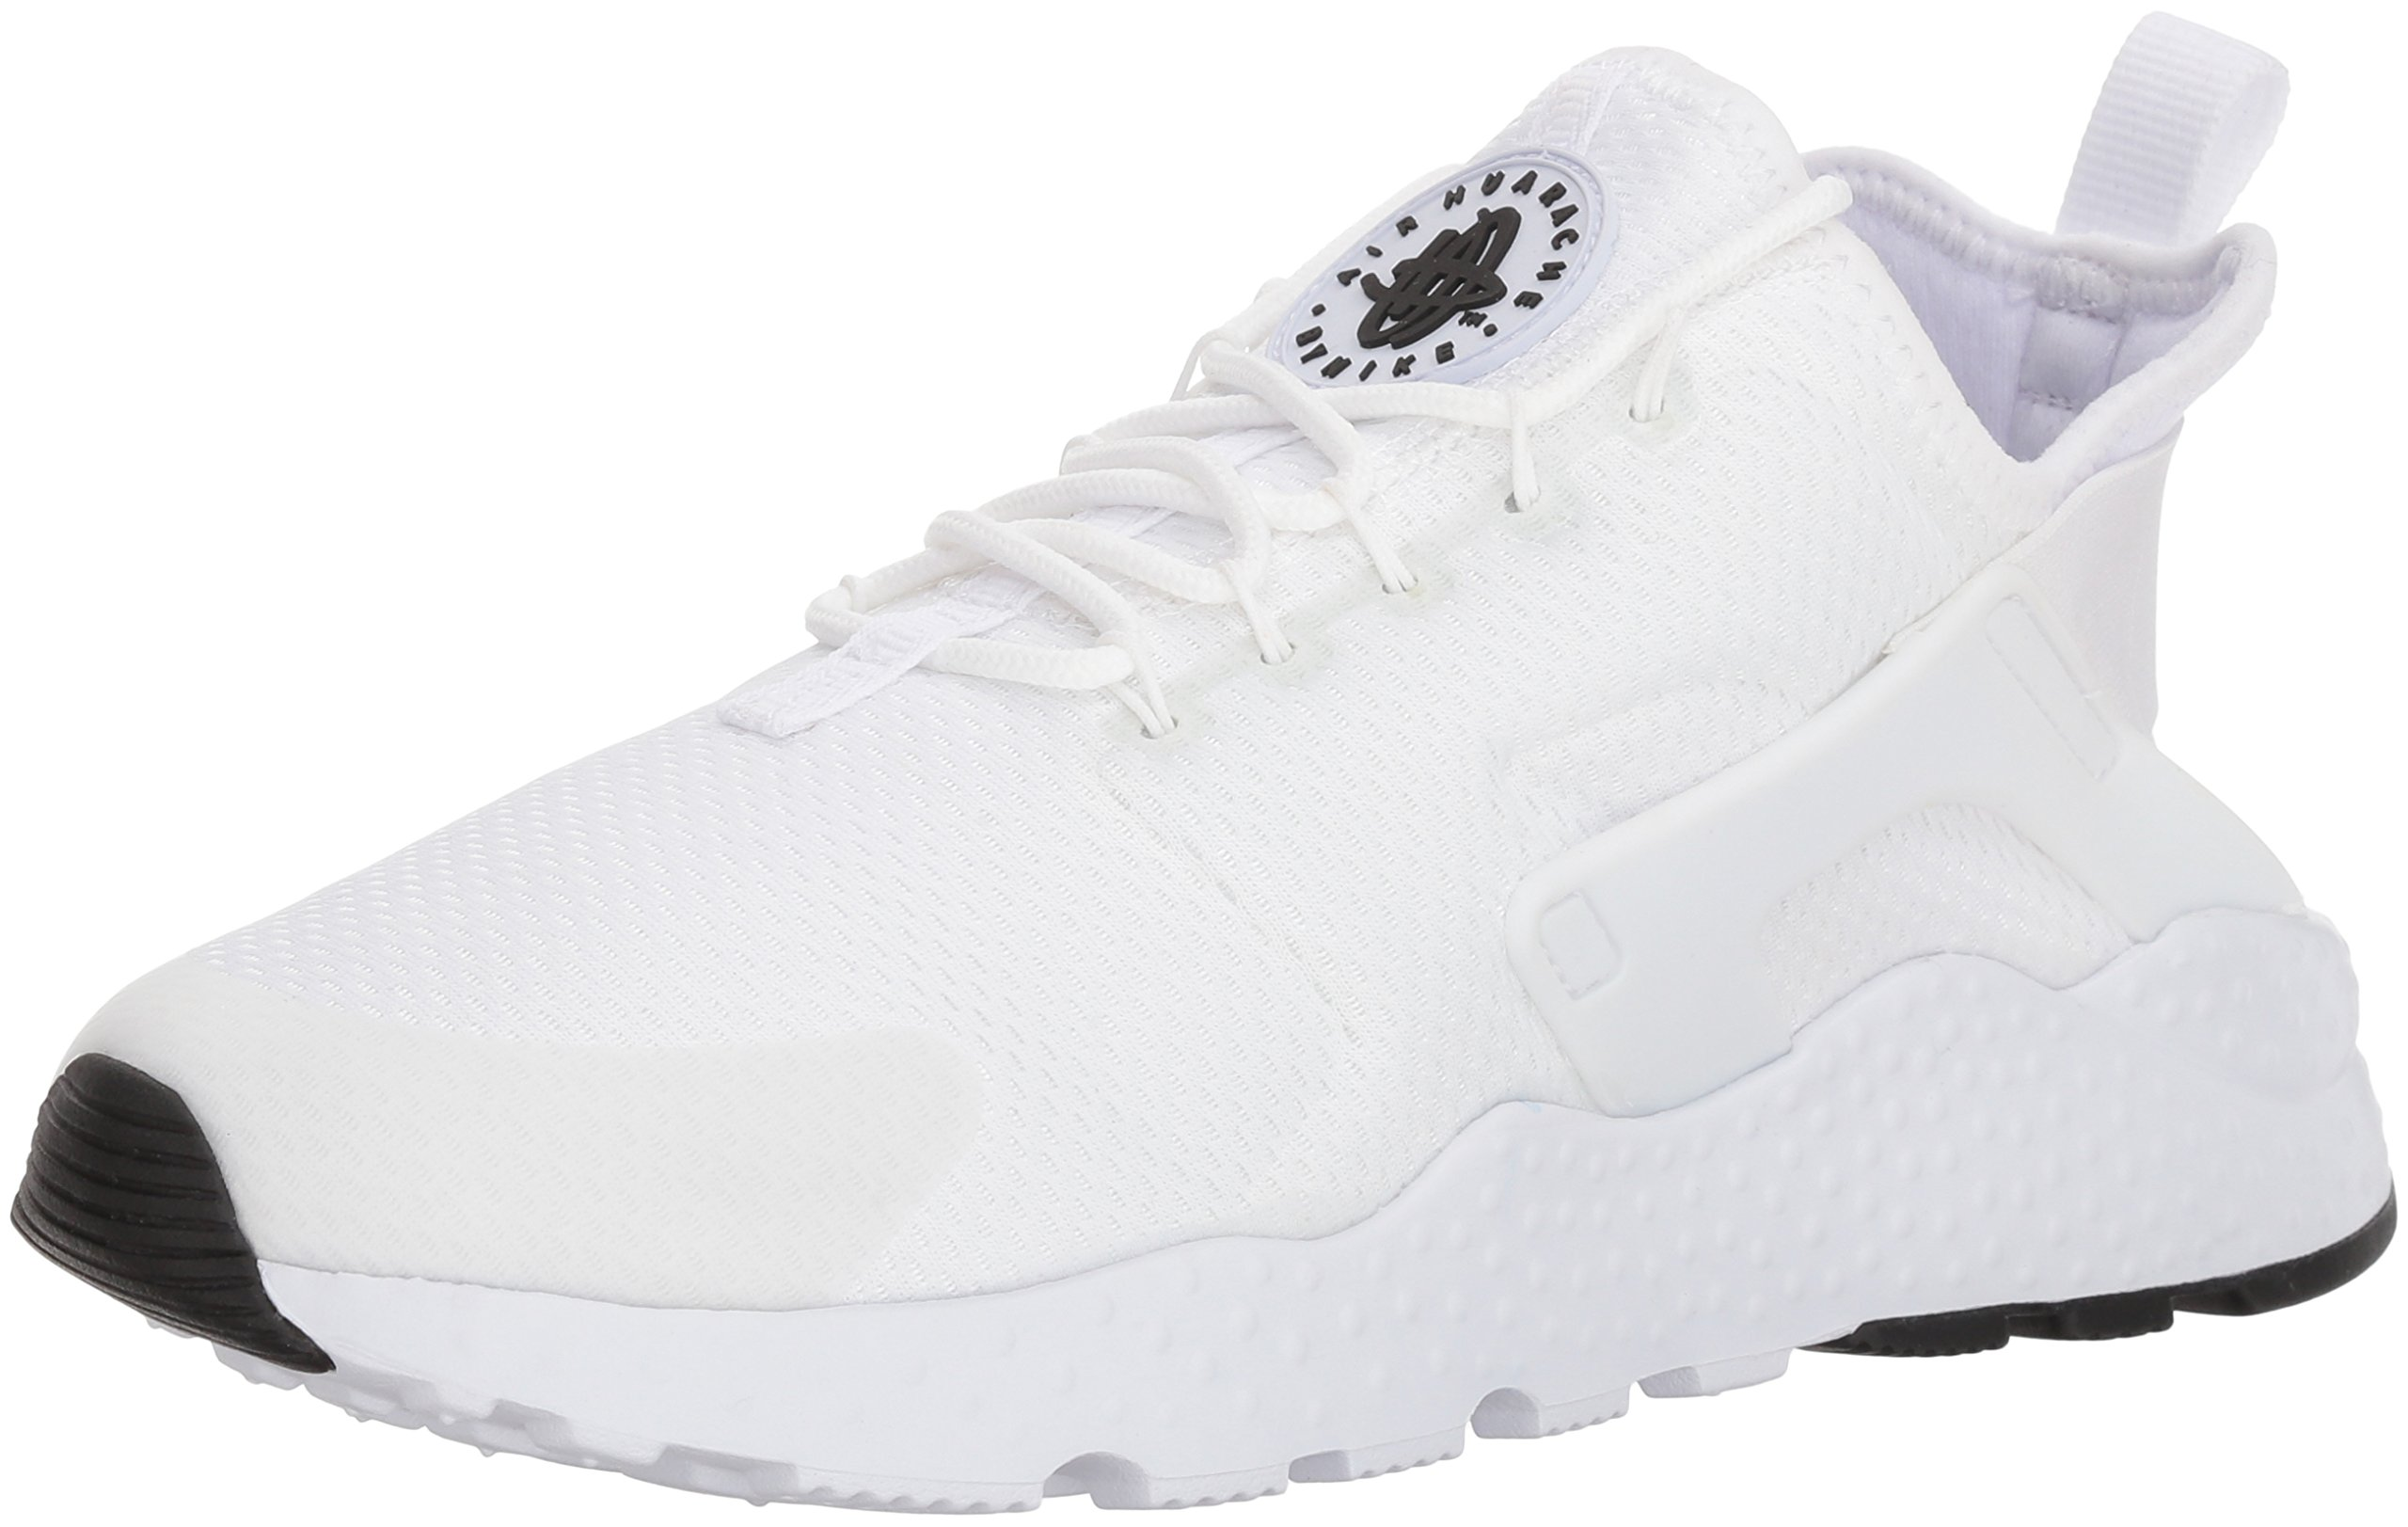 f02f98d8f4 Galleon - Nike Air Huarache Run Ultra Women's Running Shoes  White/White-White-Black 819151-102 (12 B(M) US)